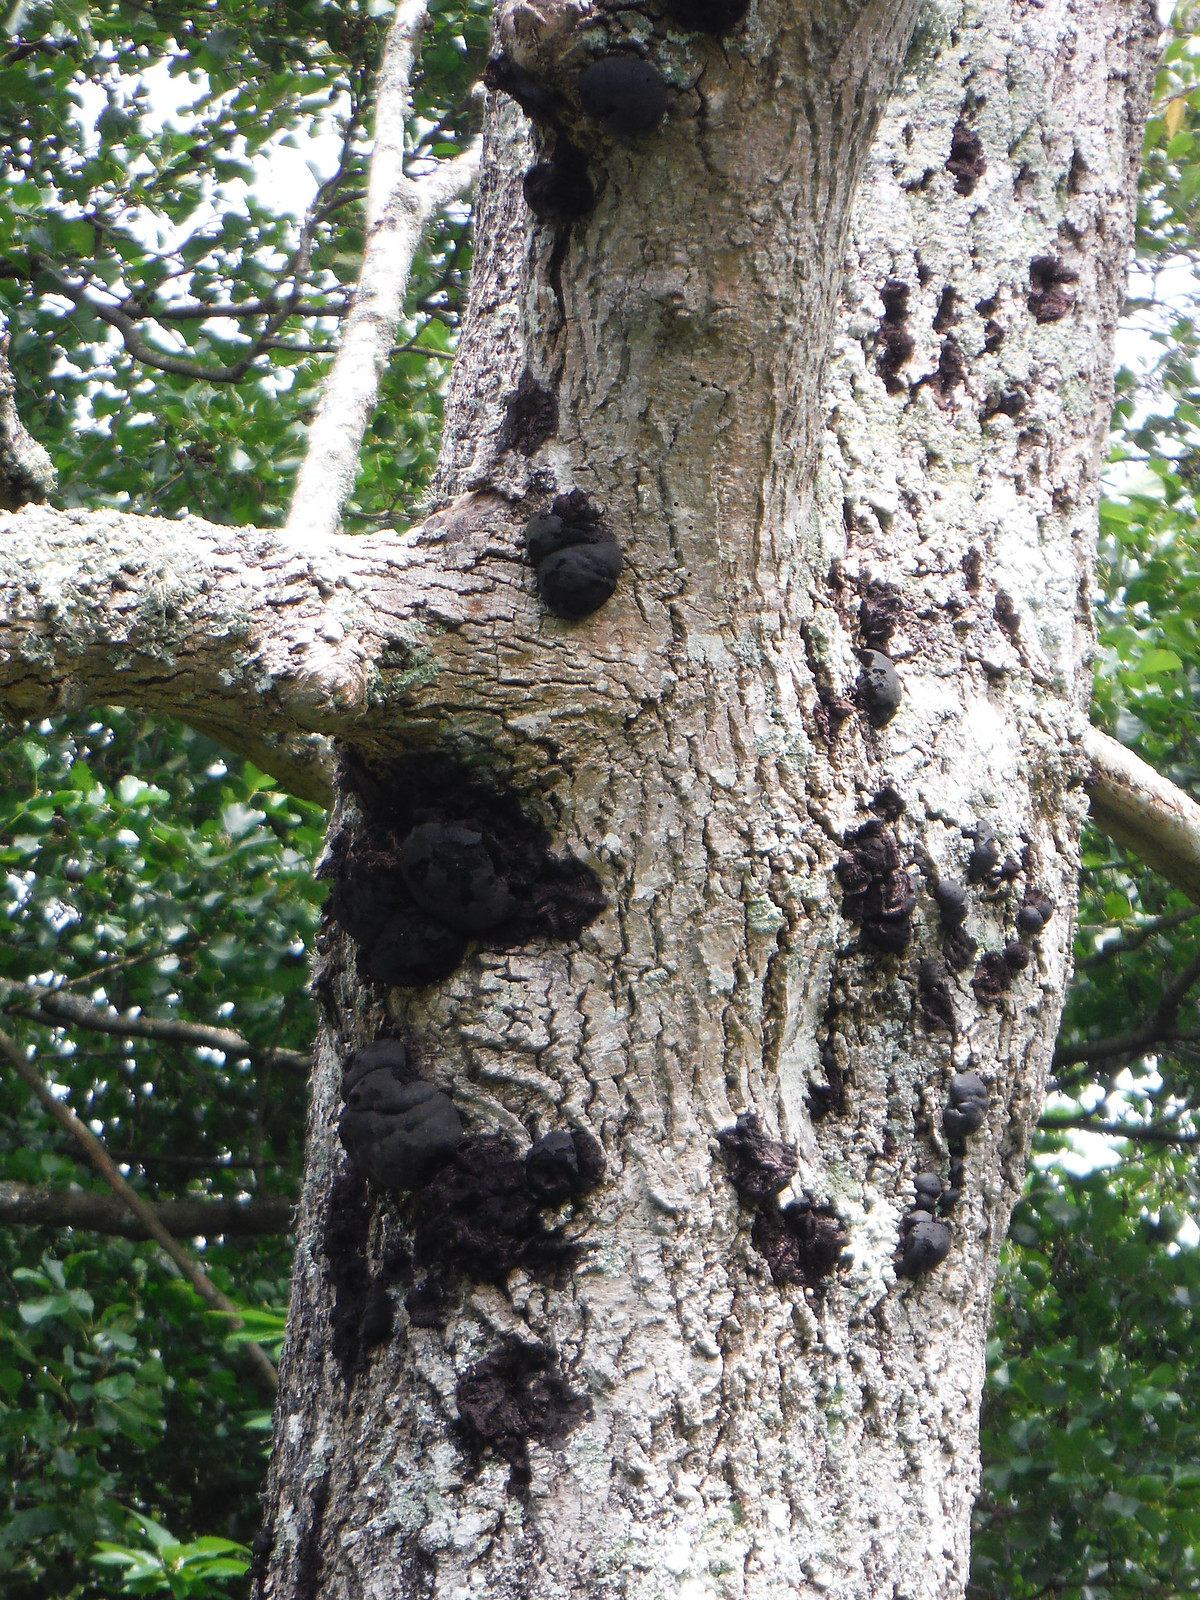 Fungi on Tree, near Black Pond, Burton Park SWC Walk 294 - Pulborough to Halfway Bridge (via Tillington)